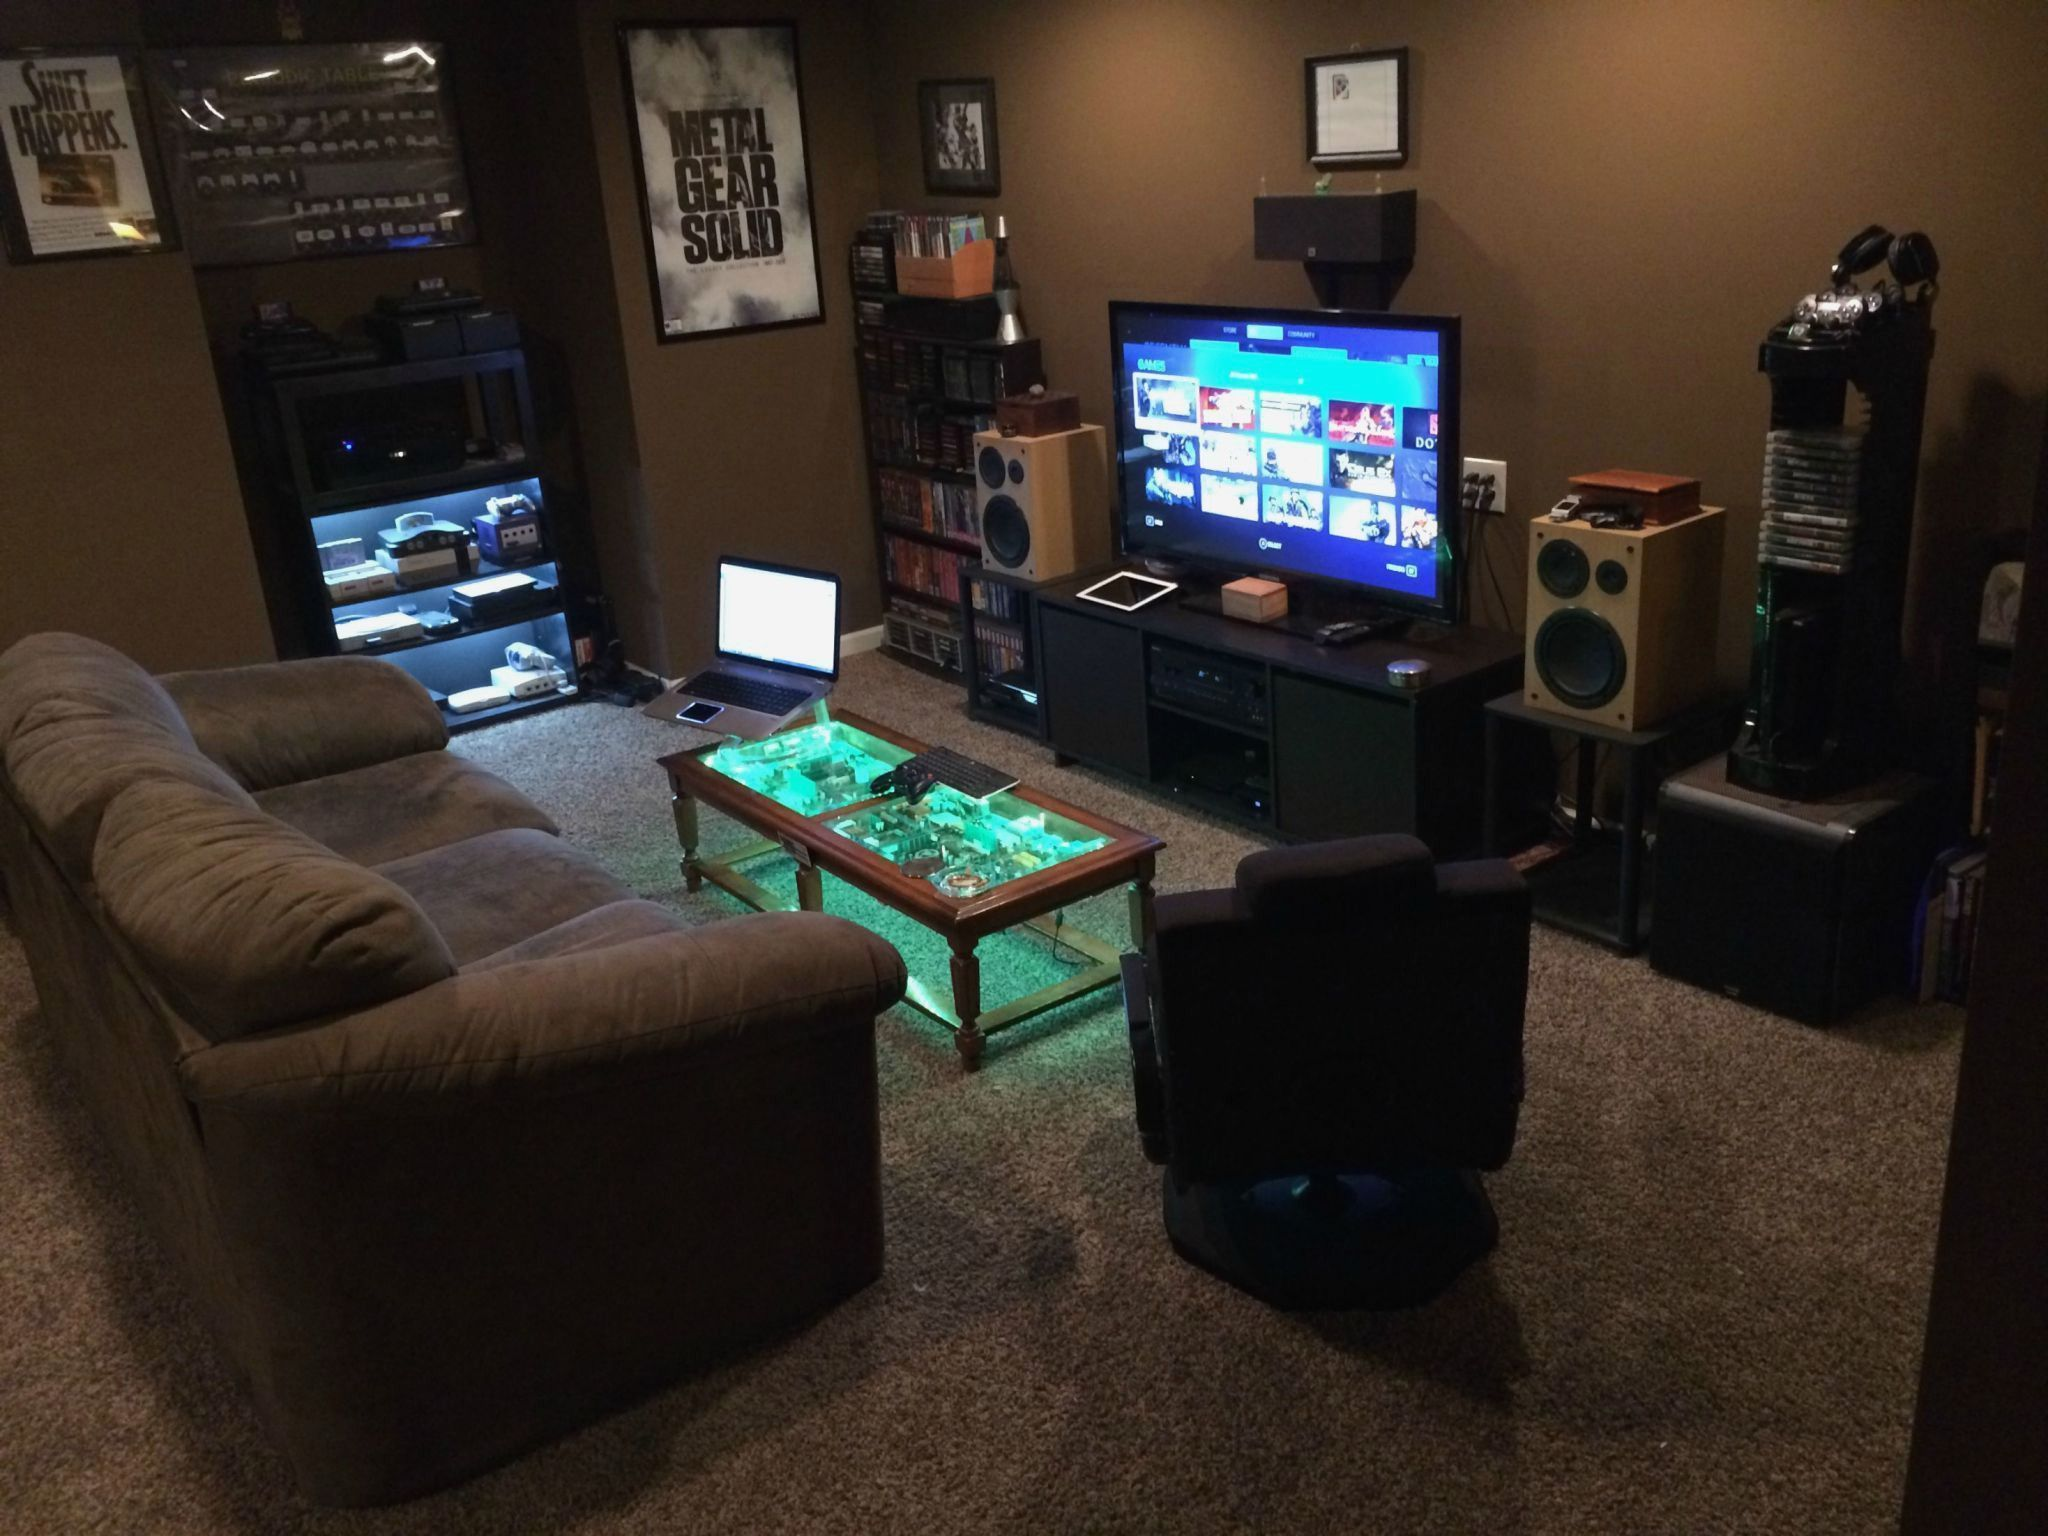 Brilliant ideas of home decor simple geek room decor home - Small video game room ideas ...